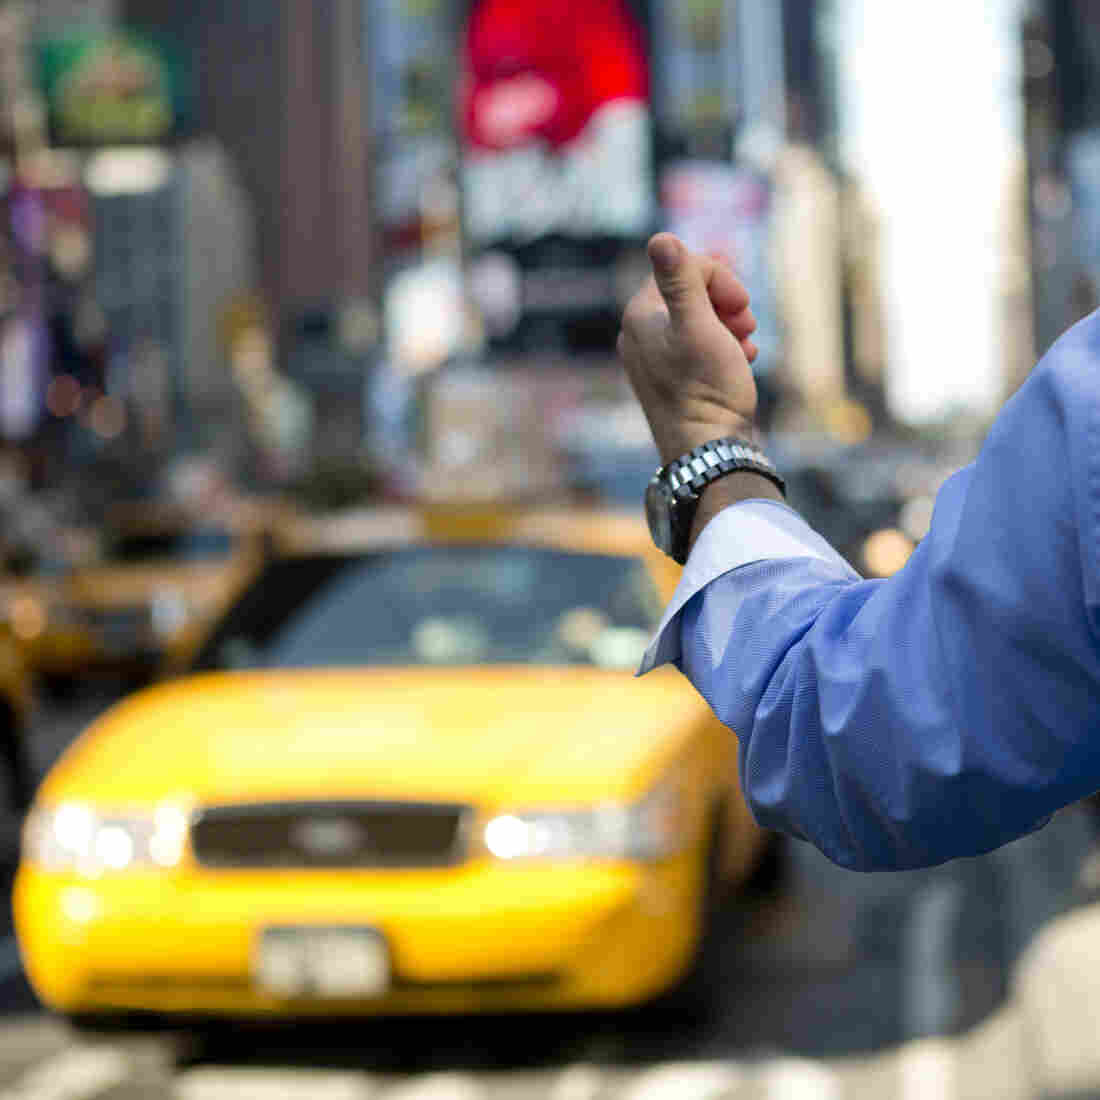 Does New York City Need More Taxis?